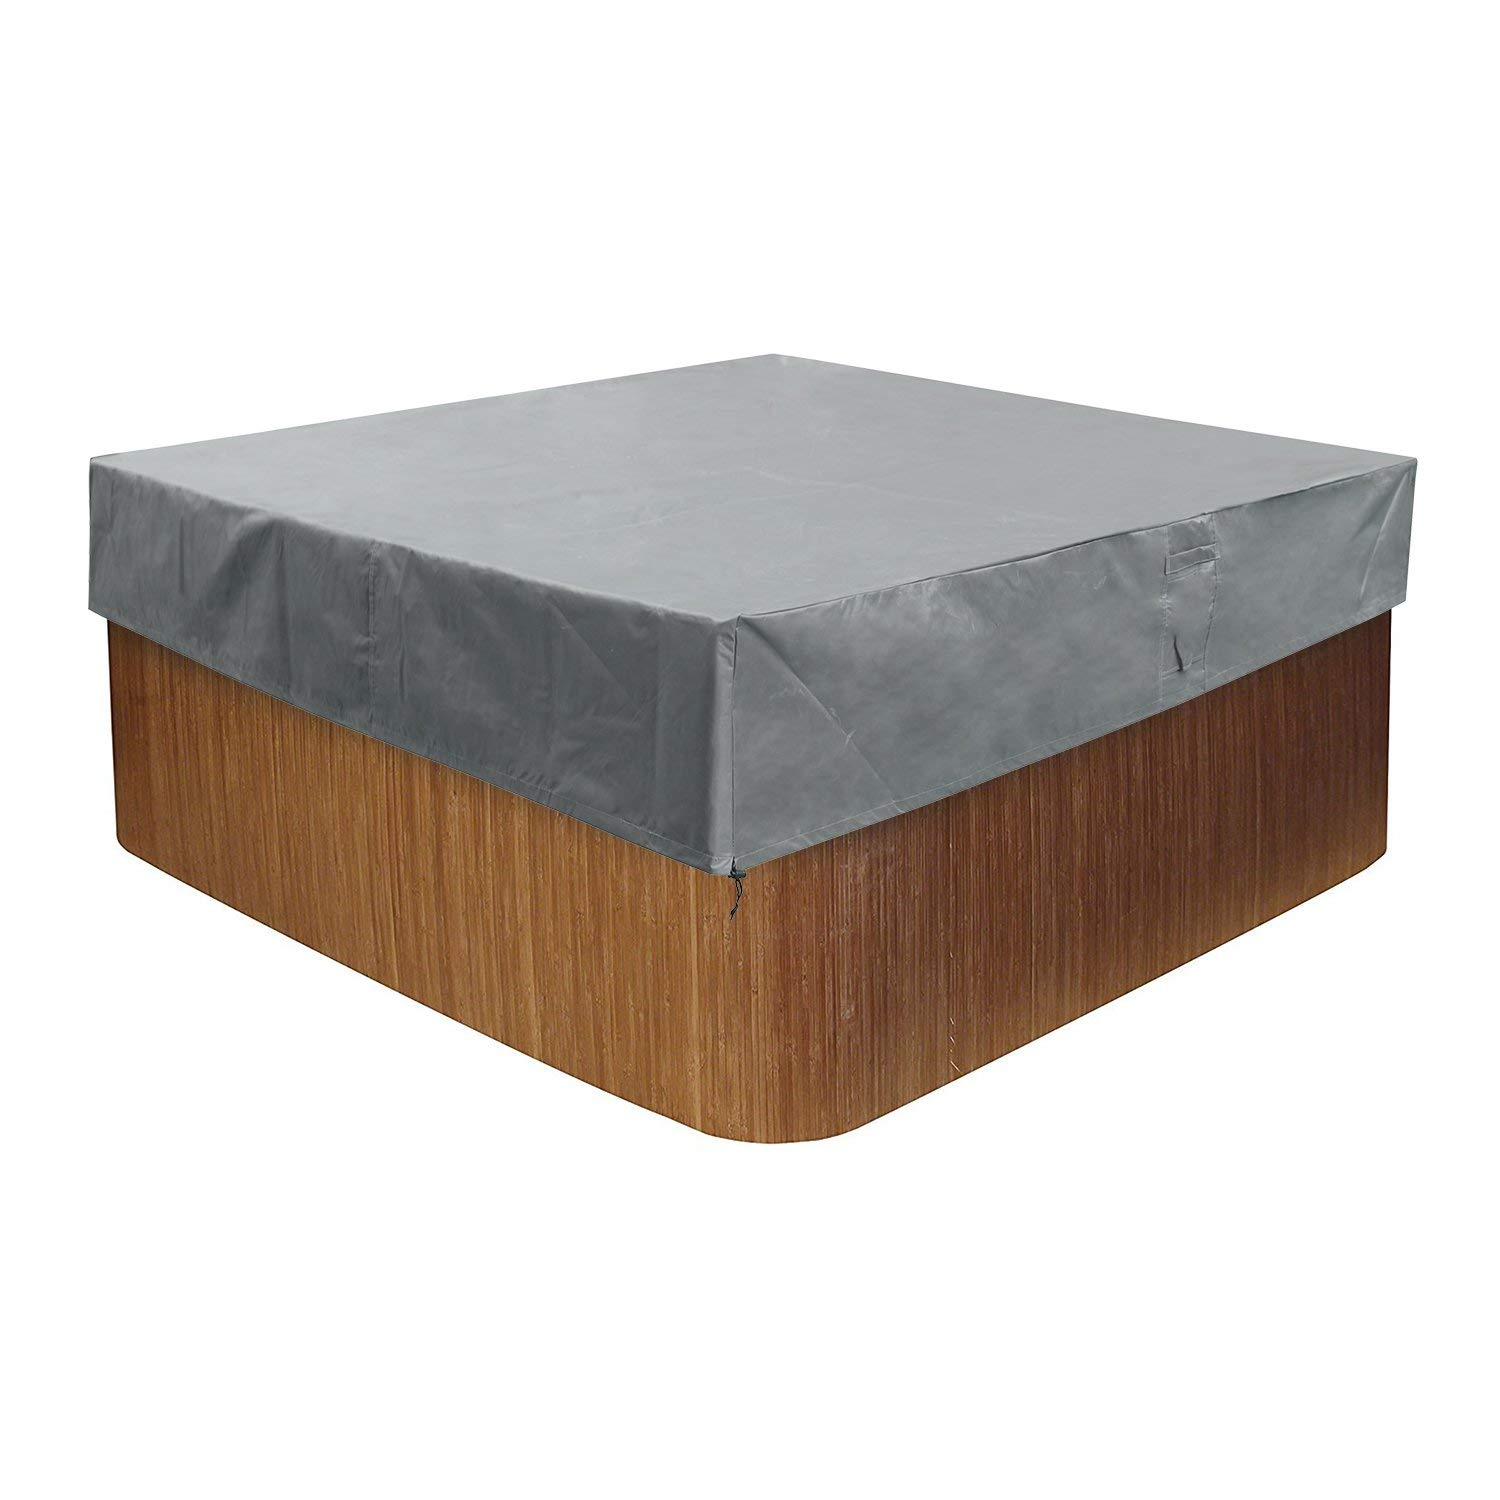 """CKClub 88"""" W x 88"""" D x 14"""" H Outdoor Heavy Duty Square Hot Tub Cover Water Resistant Durable All Season Protection Large"""